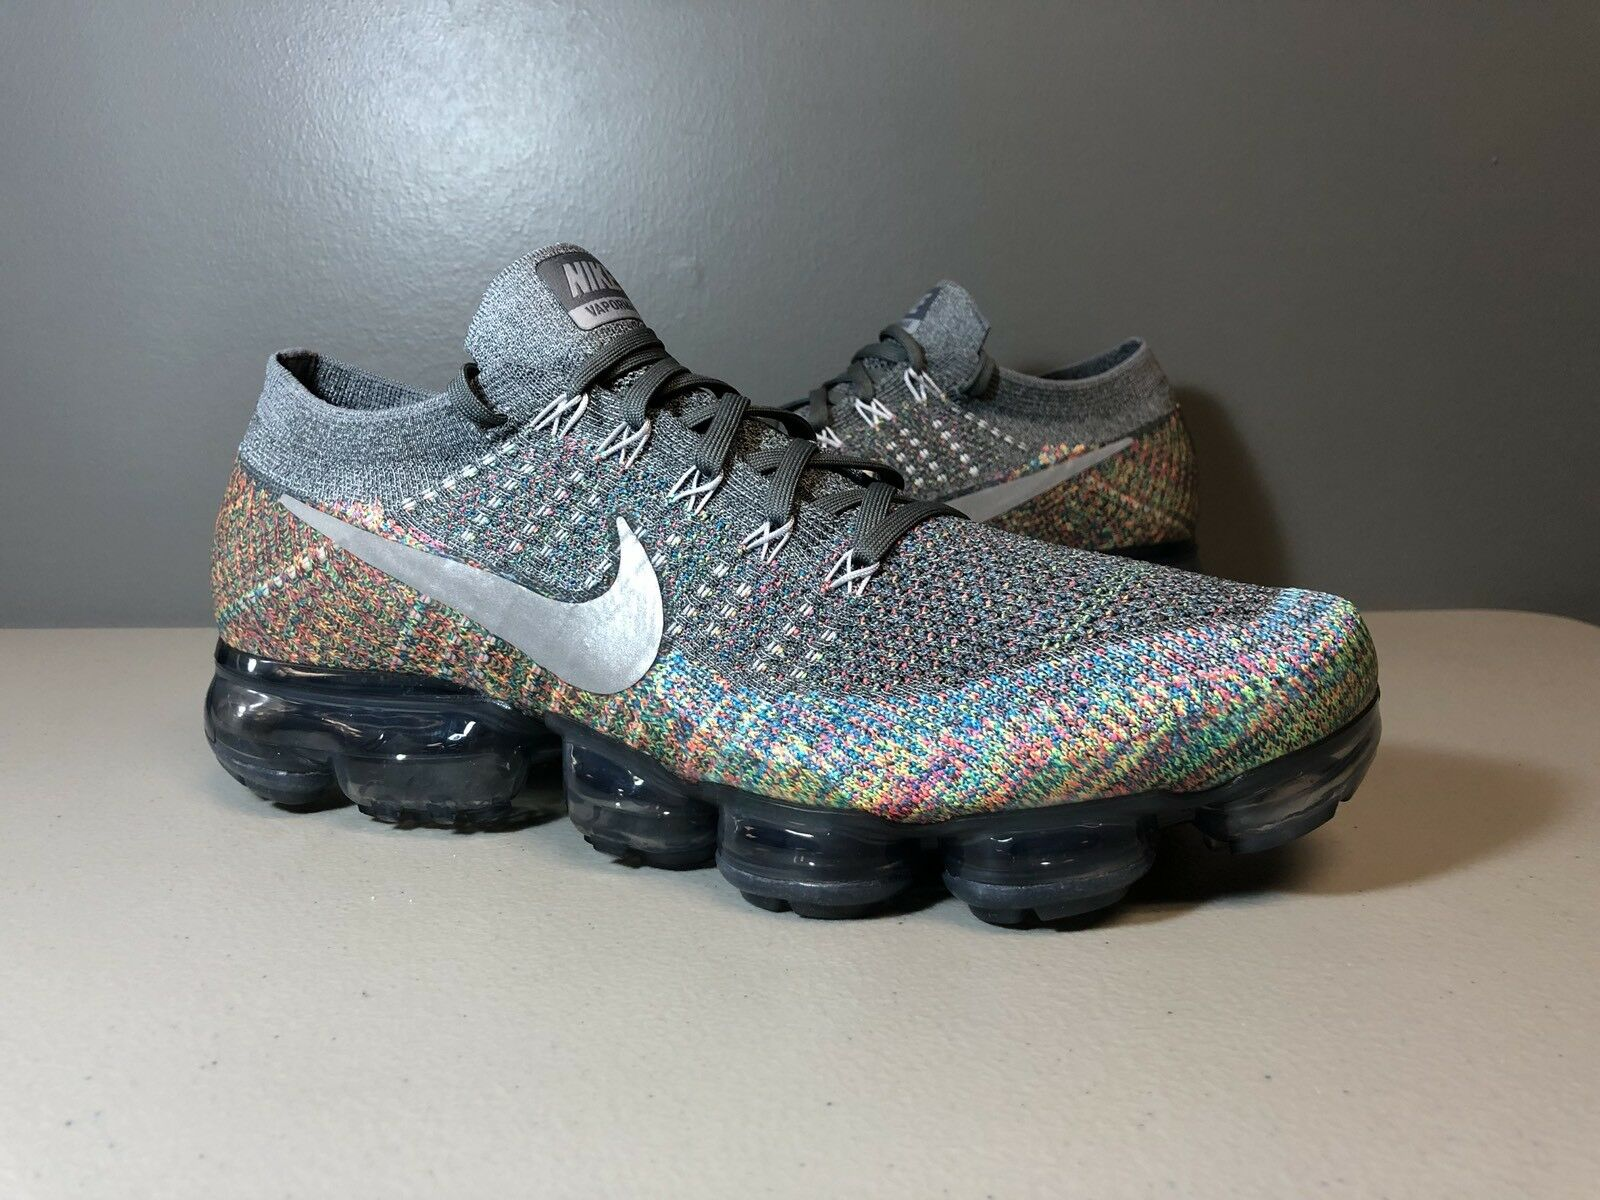 NIKE AIR VAPORMAX FLYKNIT MULTICOLOR SILVER 849558 019 SIZE 11 OFF WHITE Special limited time